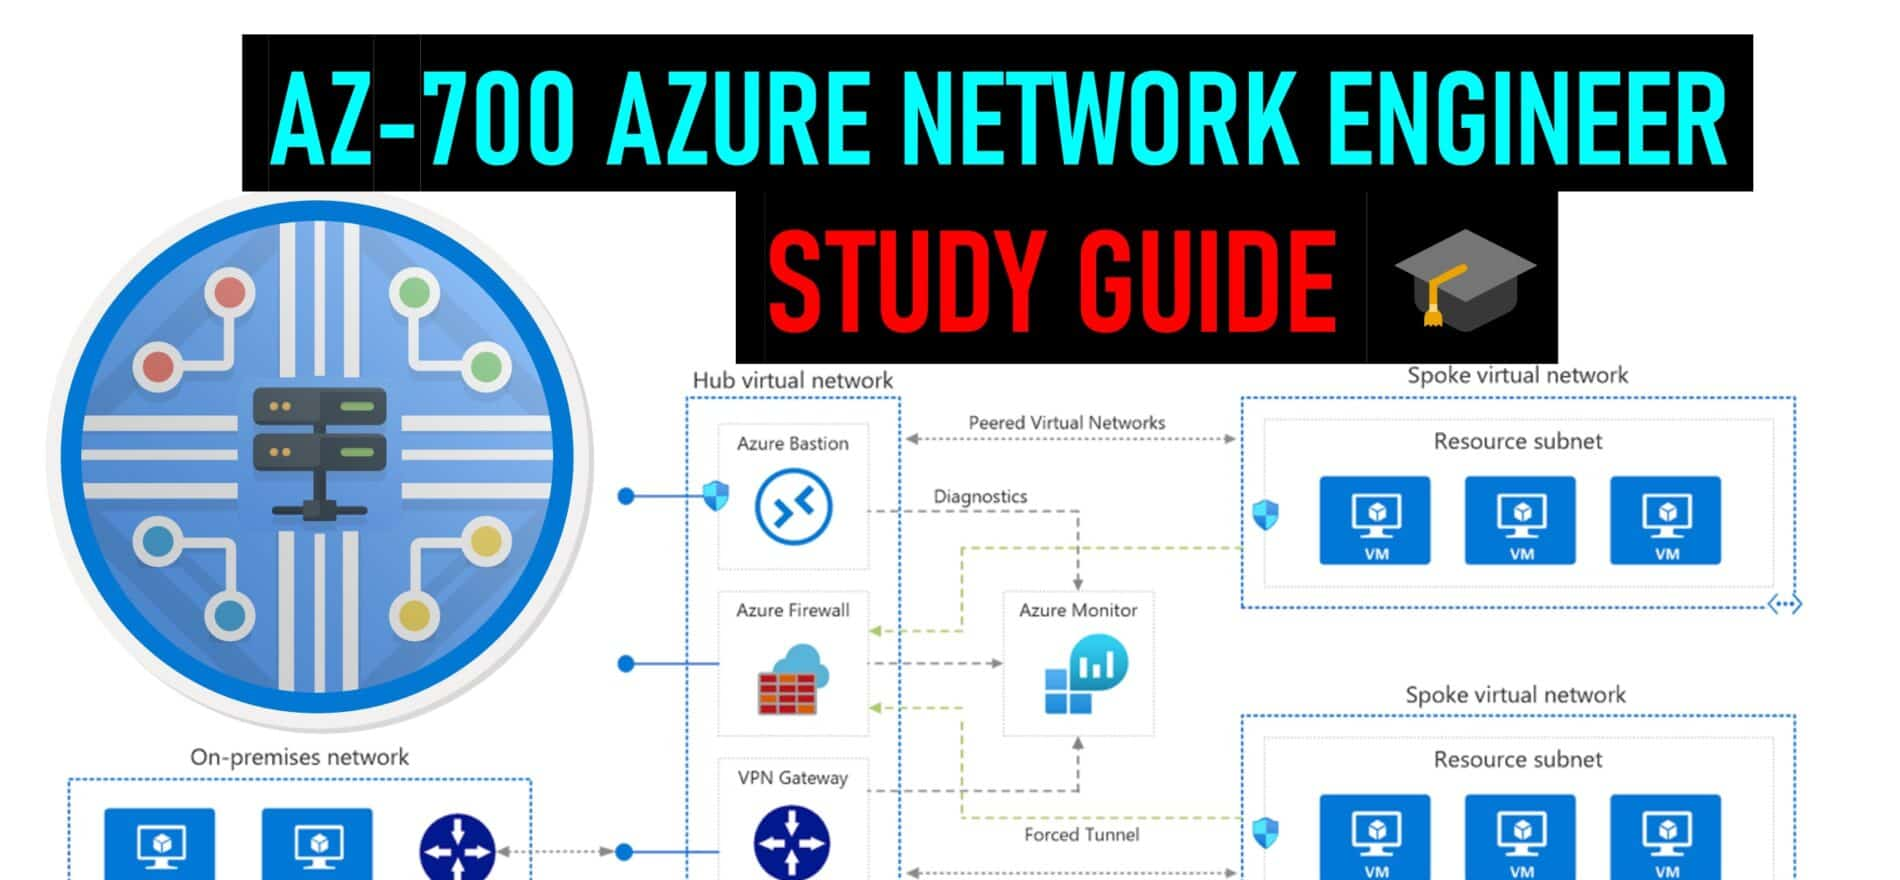 AZ-700 Microsft Azure Networking Solutions Certification Exam Study Guide Azure Network Engineer